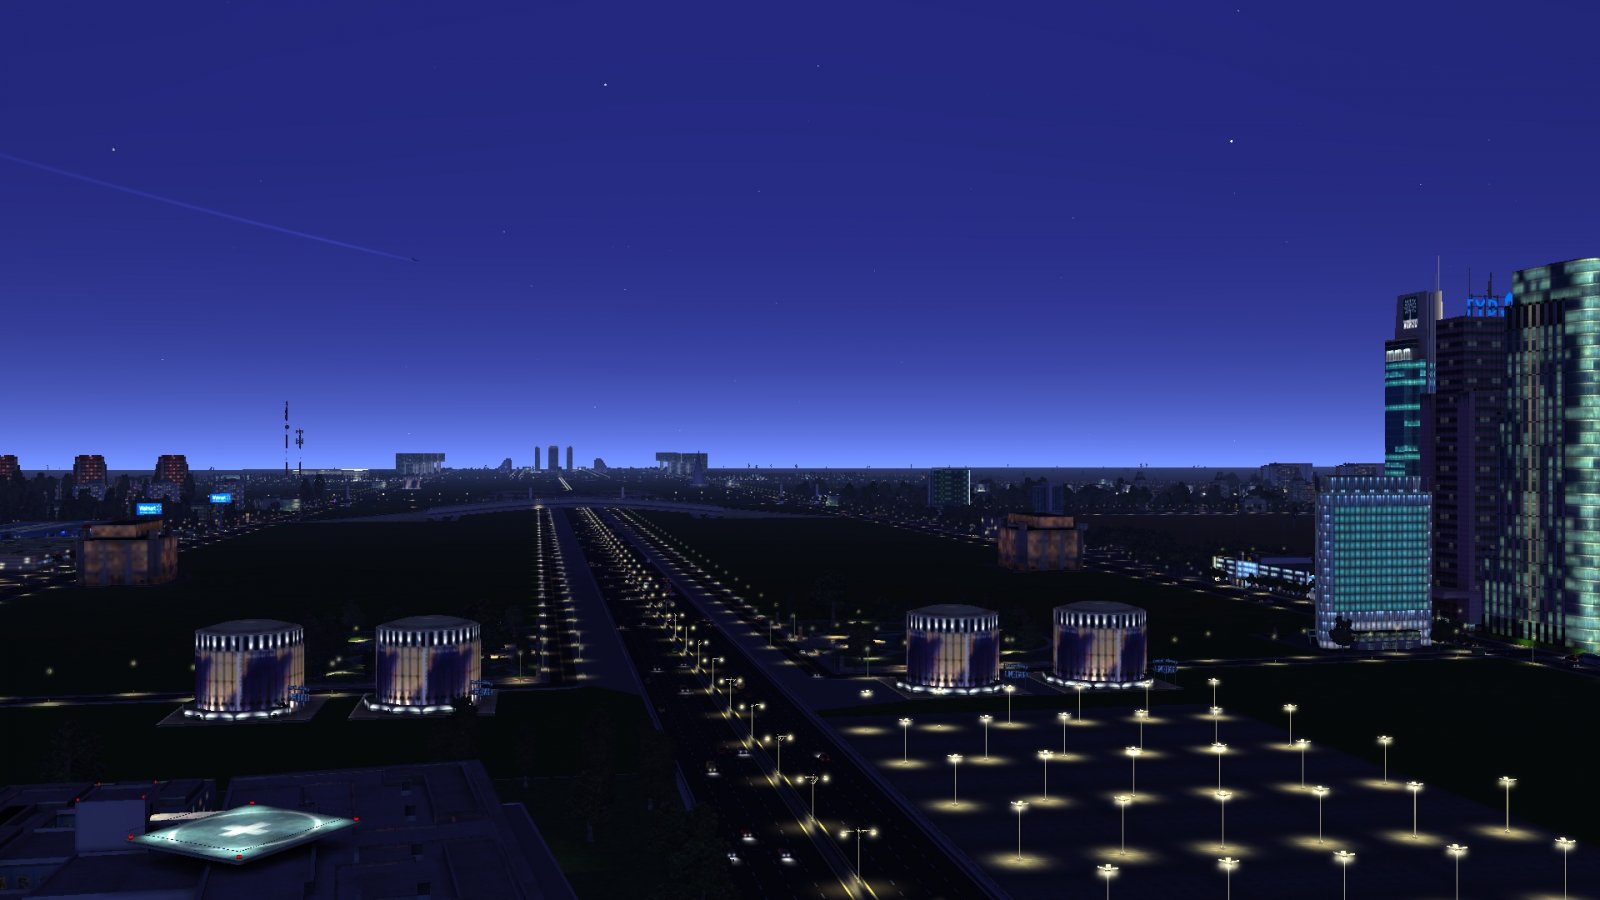 cxl_screenshot_la defense_19.jpg